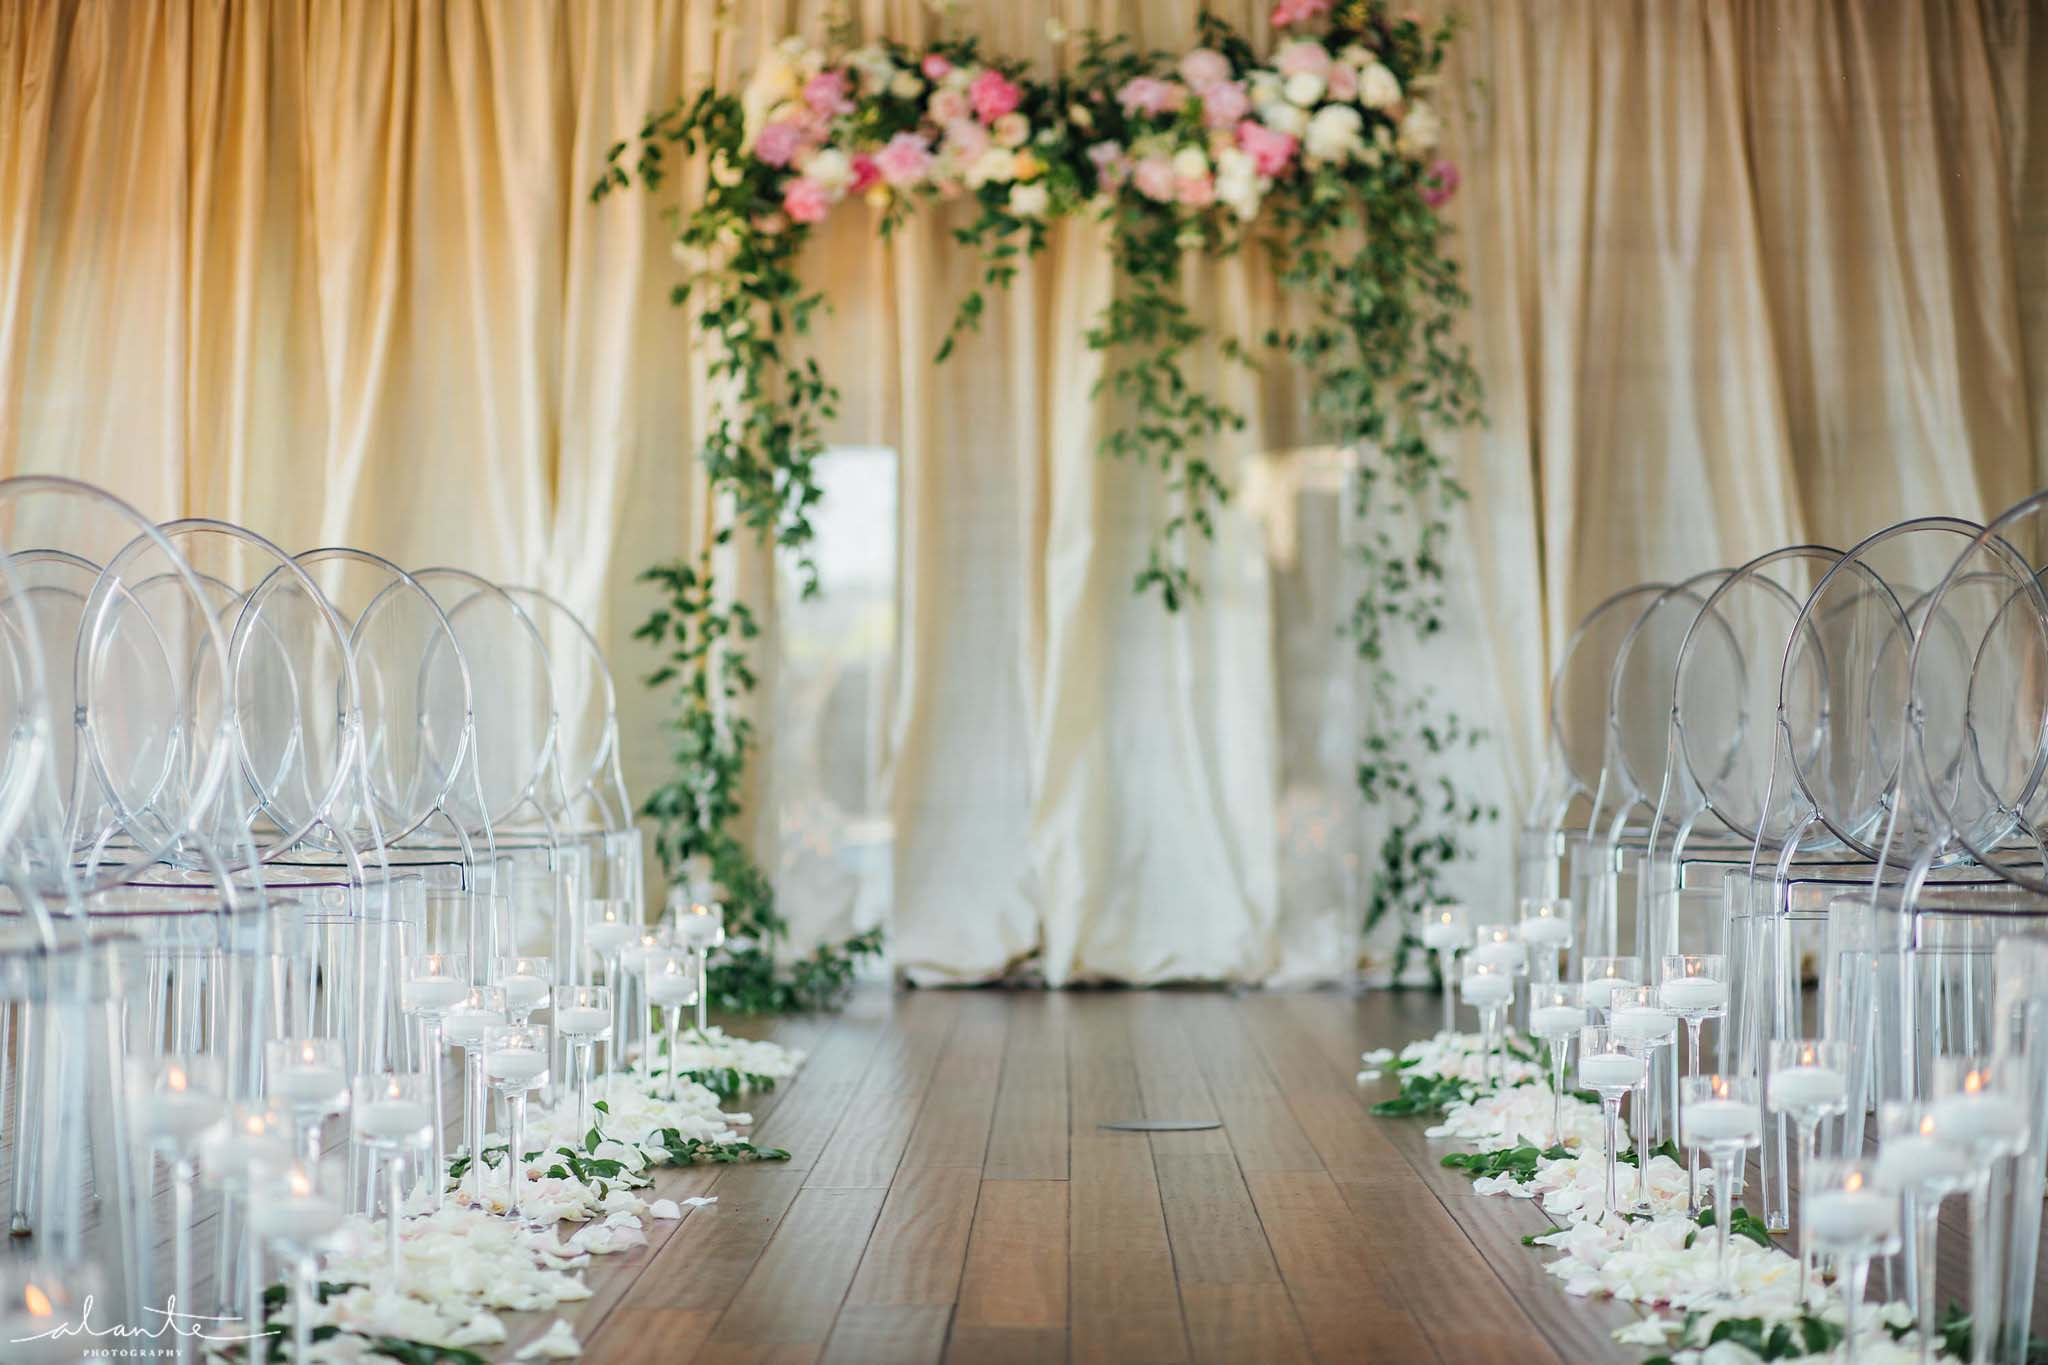 Lucite wedding arch covered in greenery and blush flowers with clear lucite chairs and candles lining the aisle - Olympic Rooftop Pavilion wedding with pink peonies by Flora Nova Design Seattle